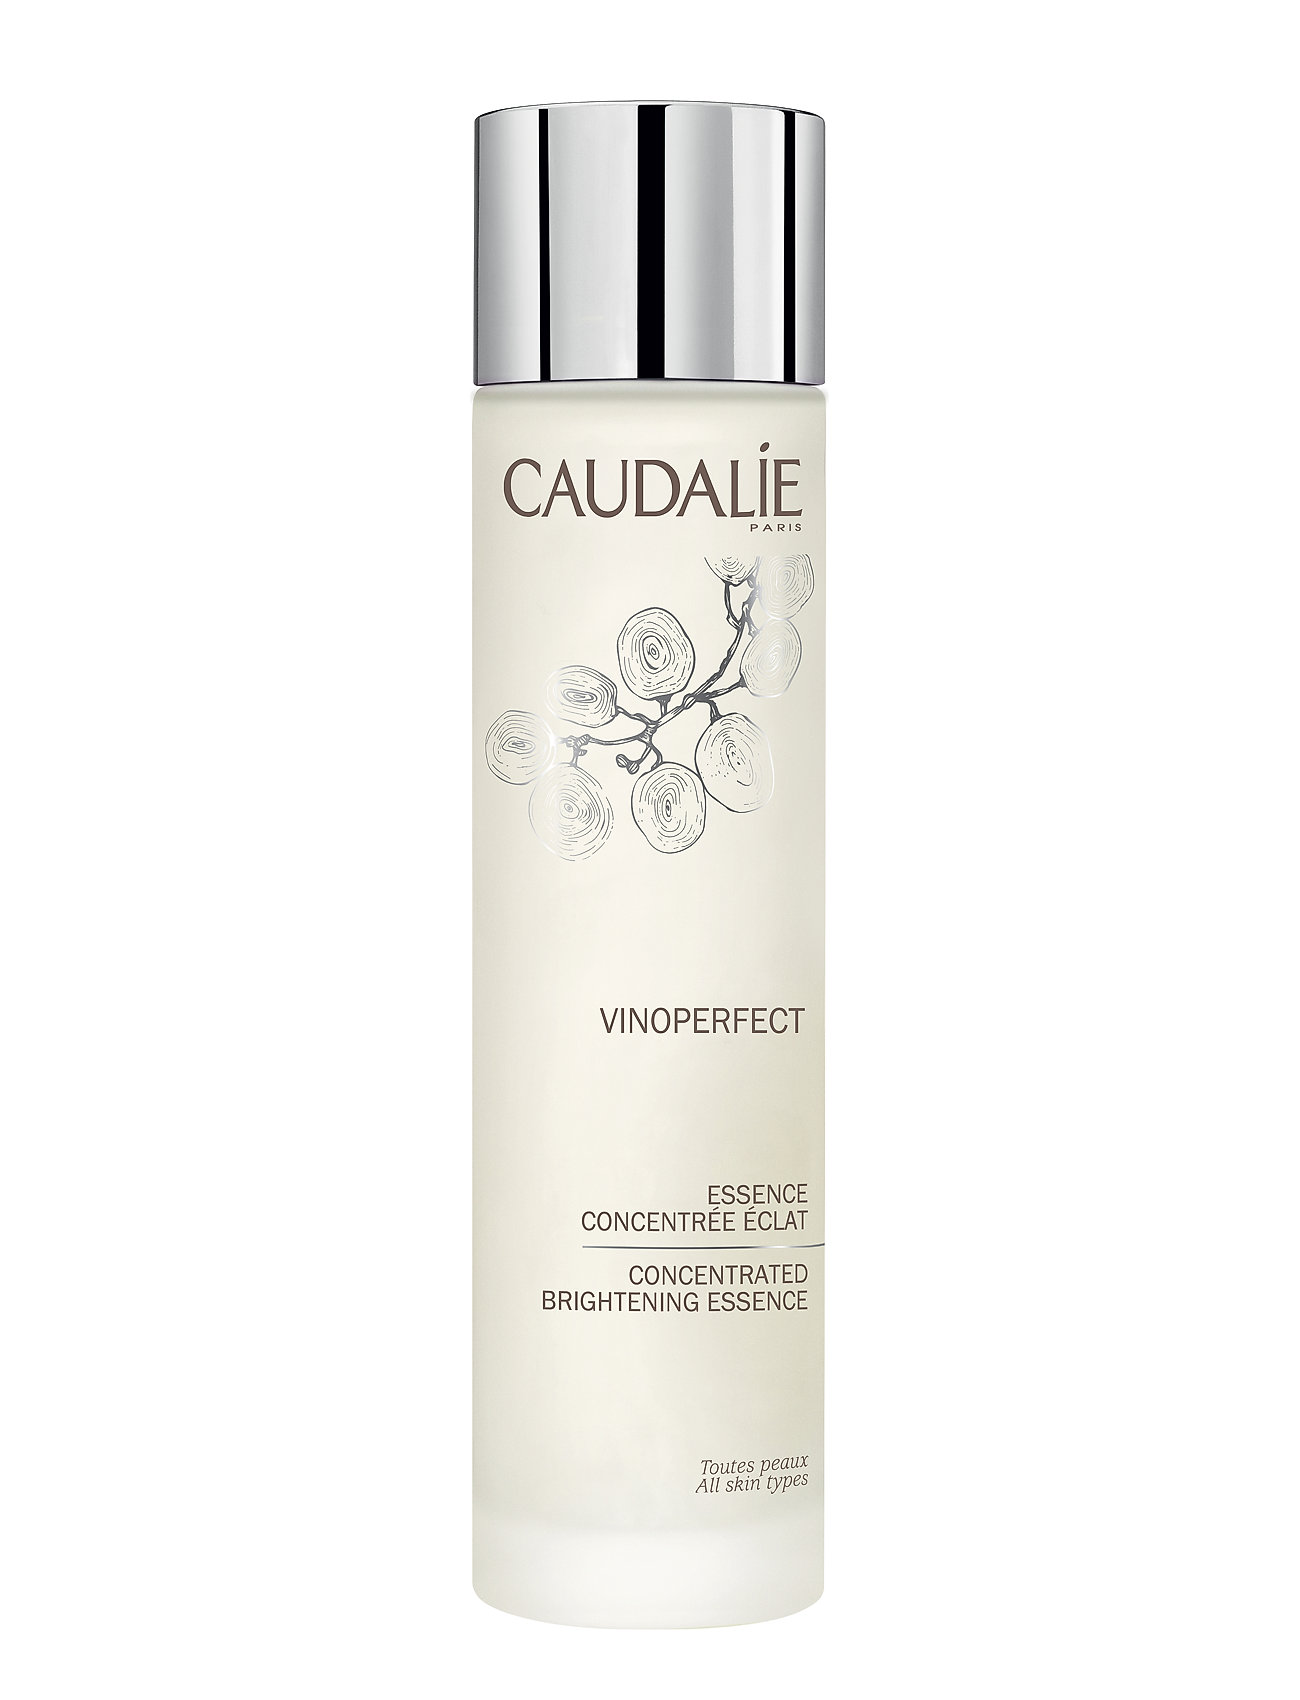 Image of Vinoperfect Concentrated Brightening Essence Ansigtsrens T R Nude CAUDALIE (3200048067)